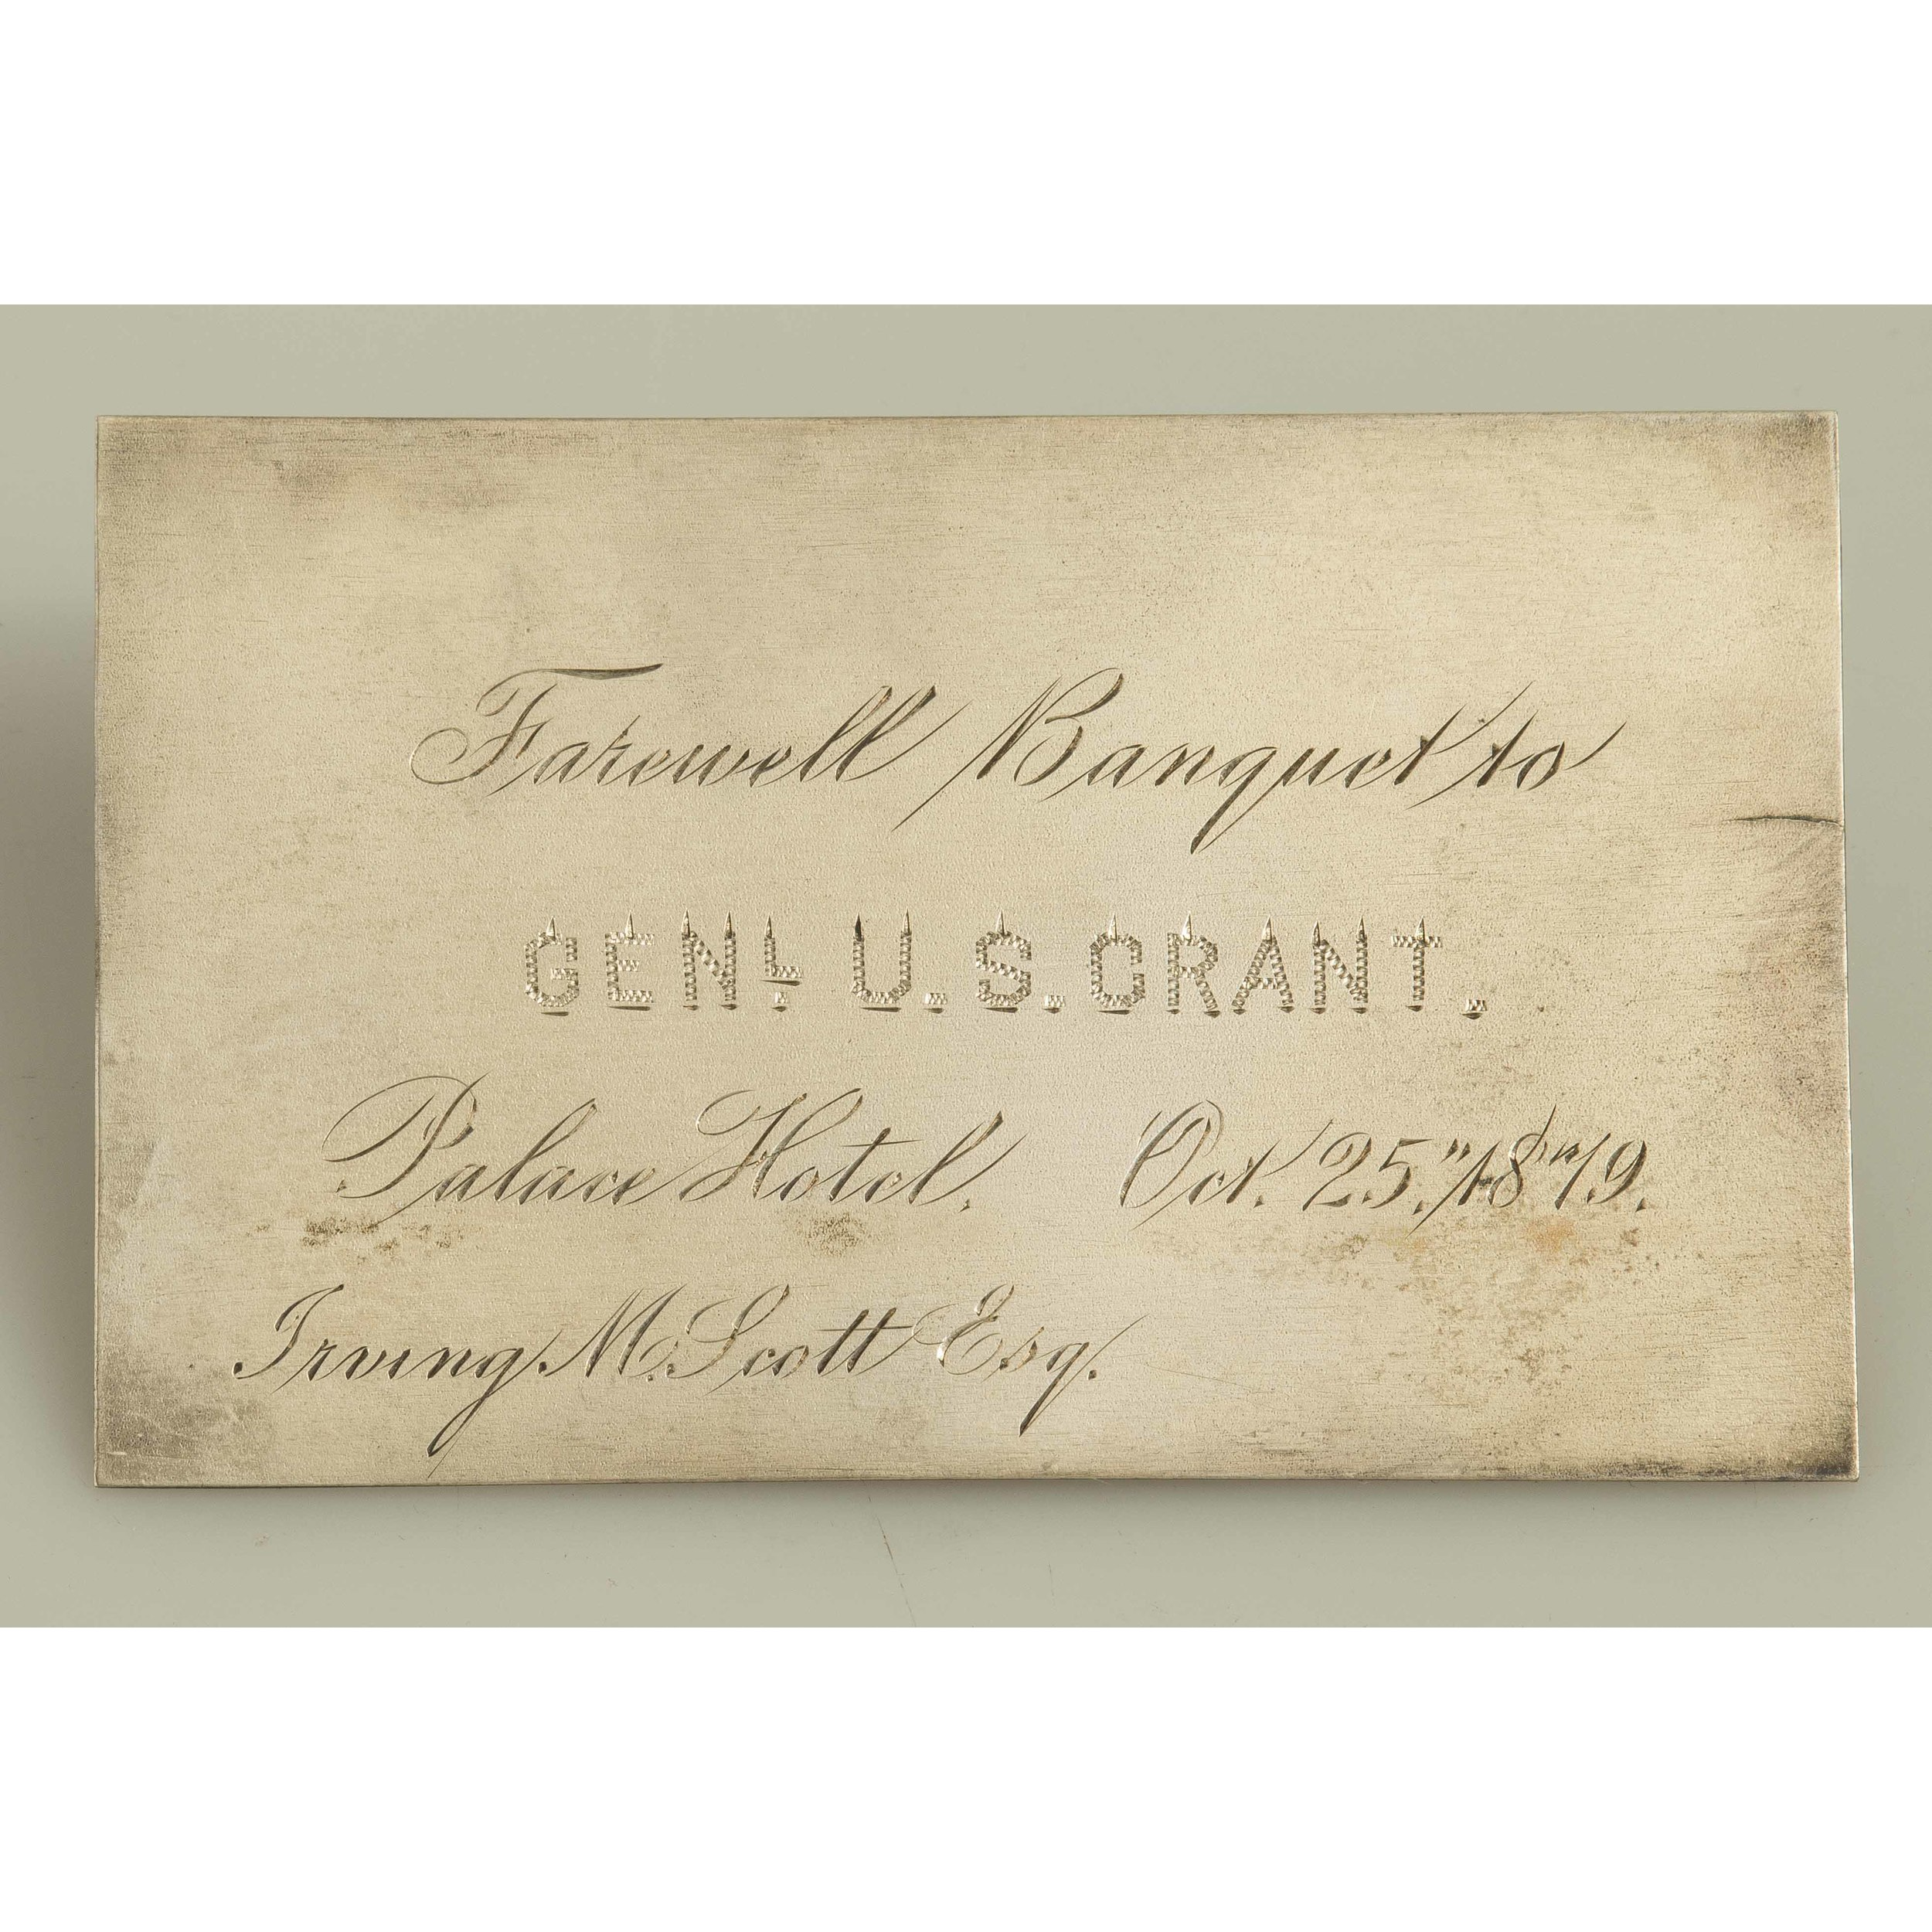 sterling place card for the san francisco farewell banquet